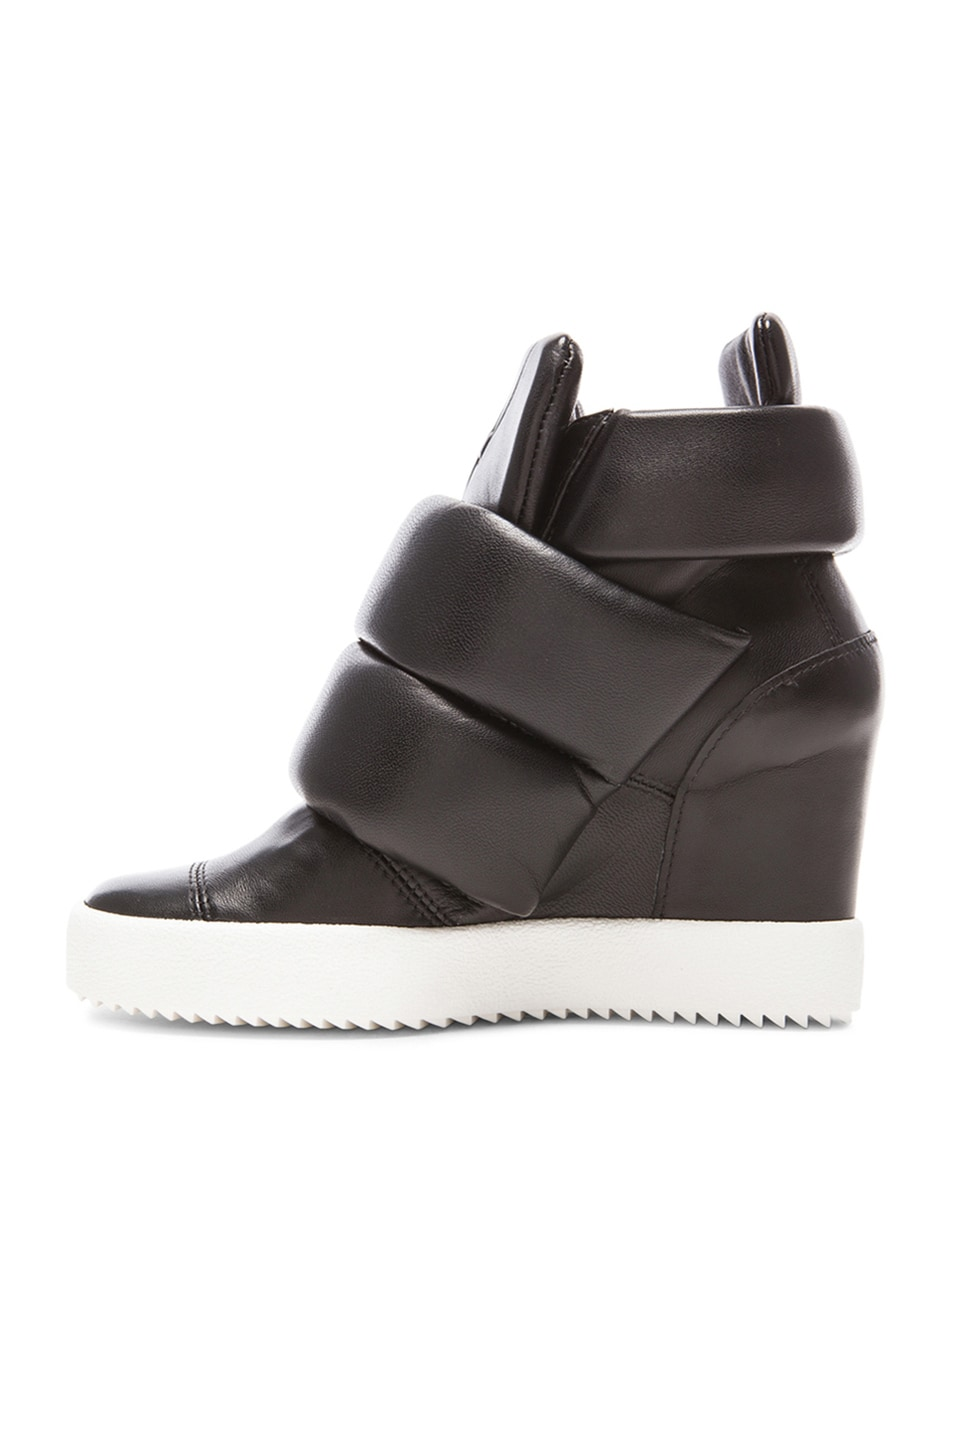 Image 5 of Giuseppe Zanotti x Kid Cudi Double Strap Wedged Leather Sneakers in Black